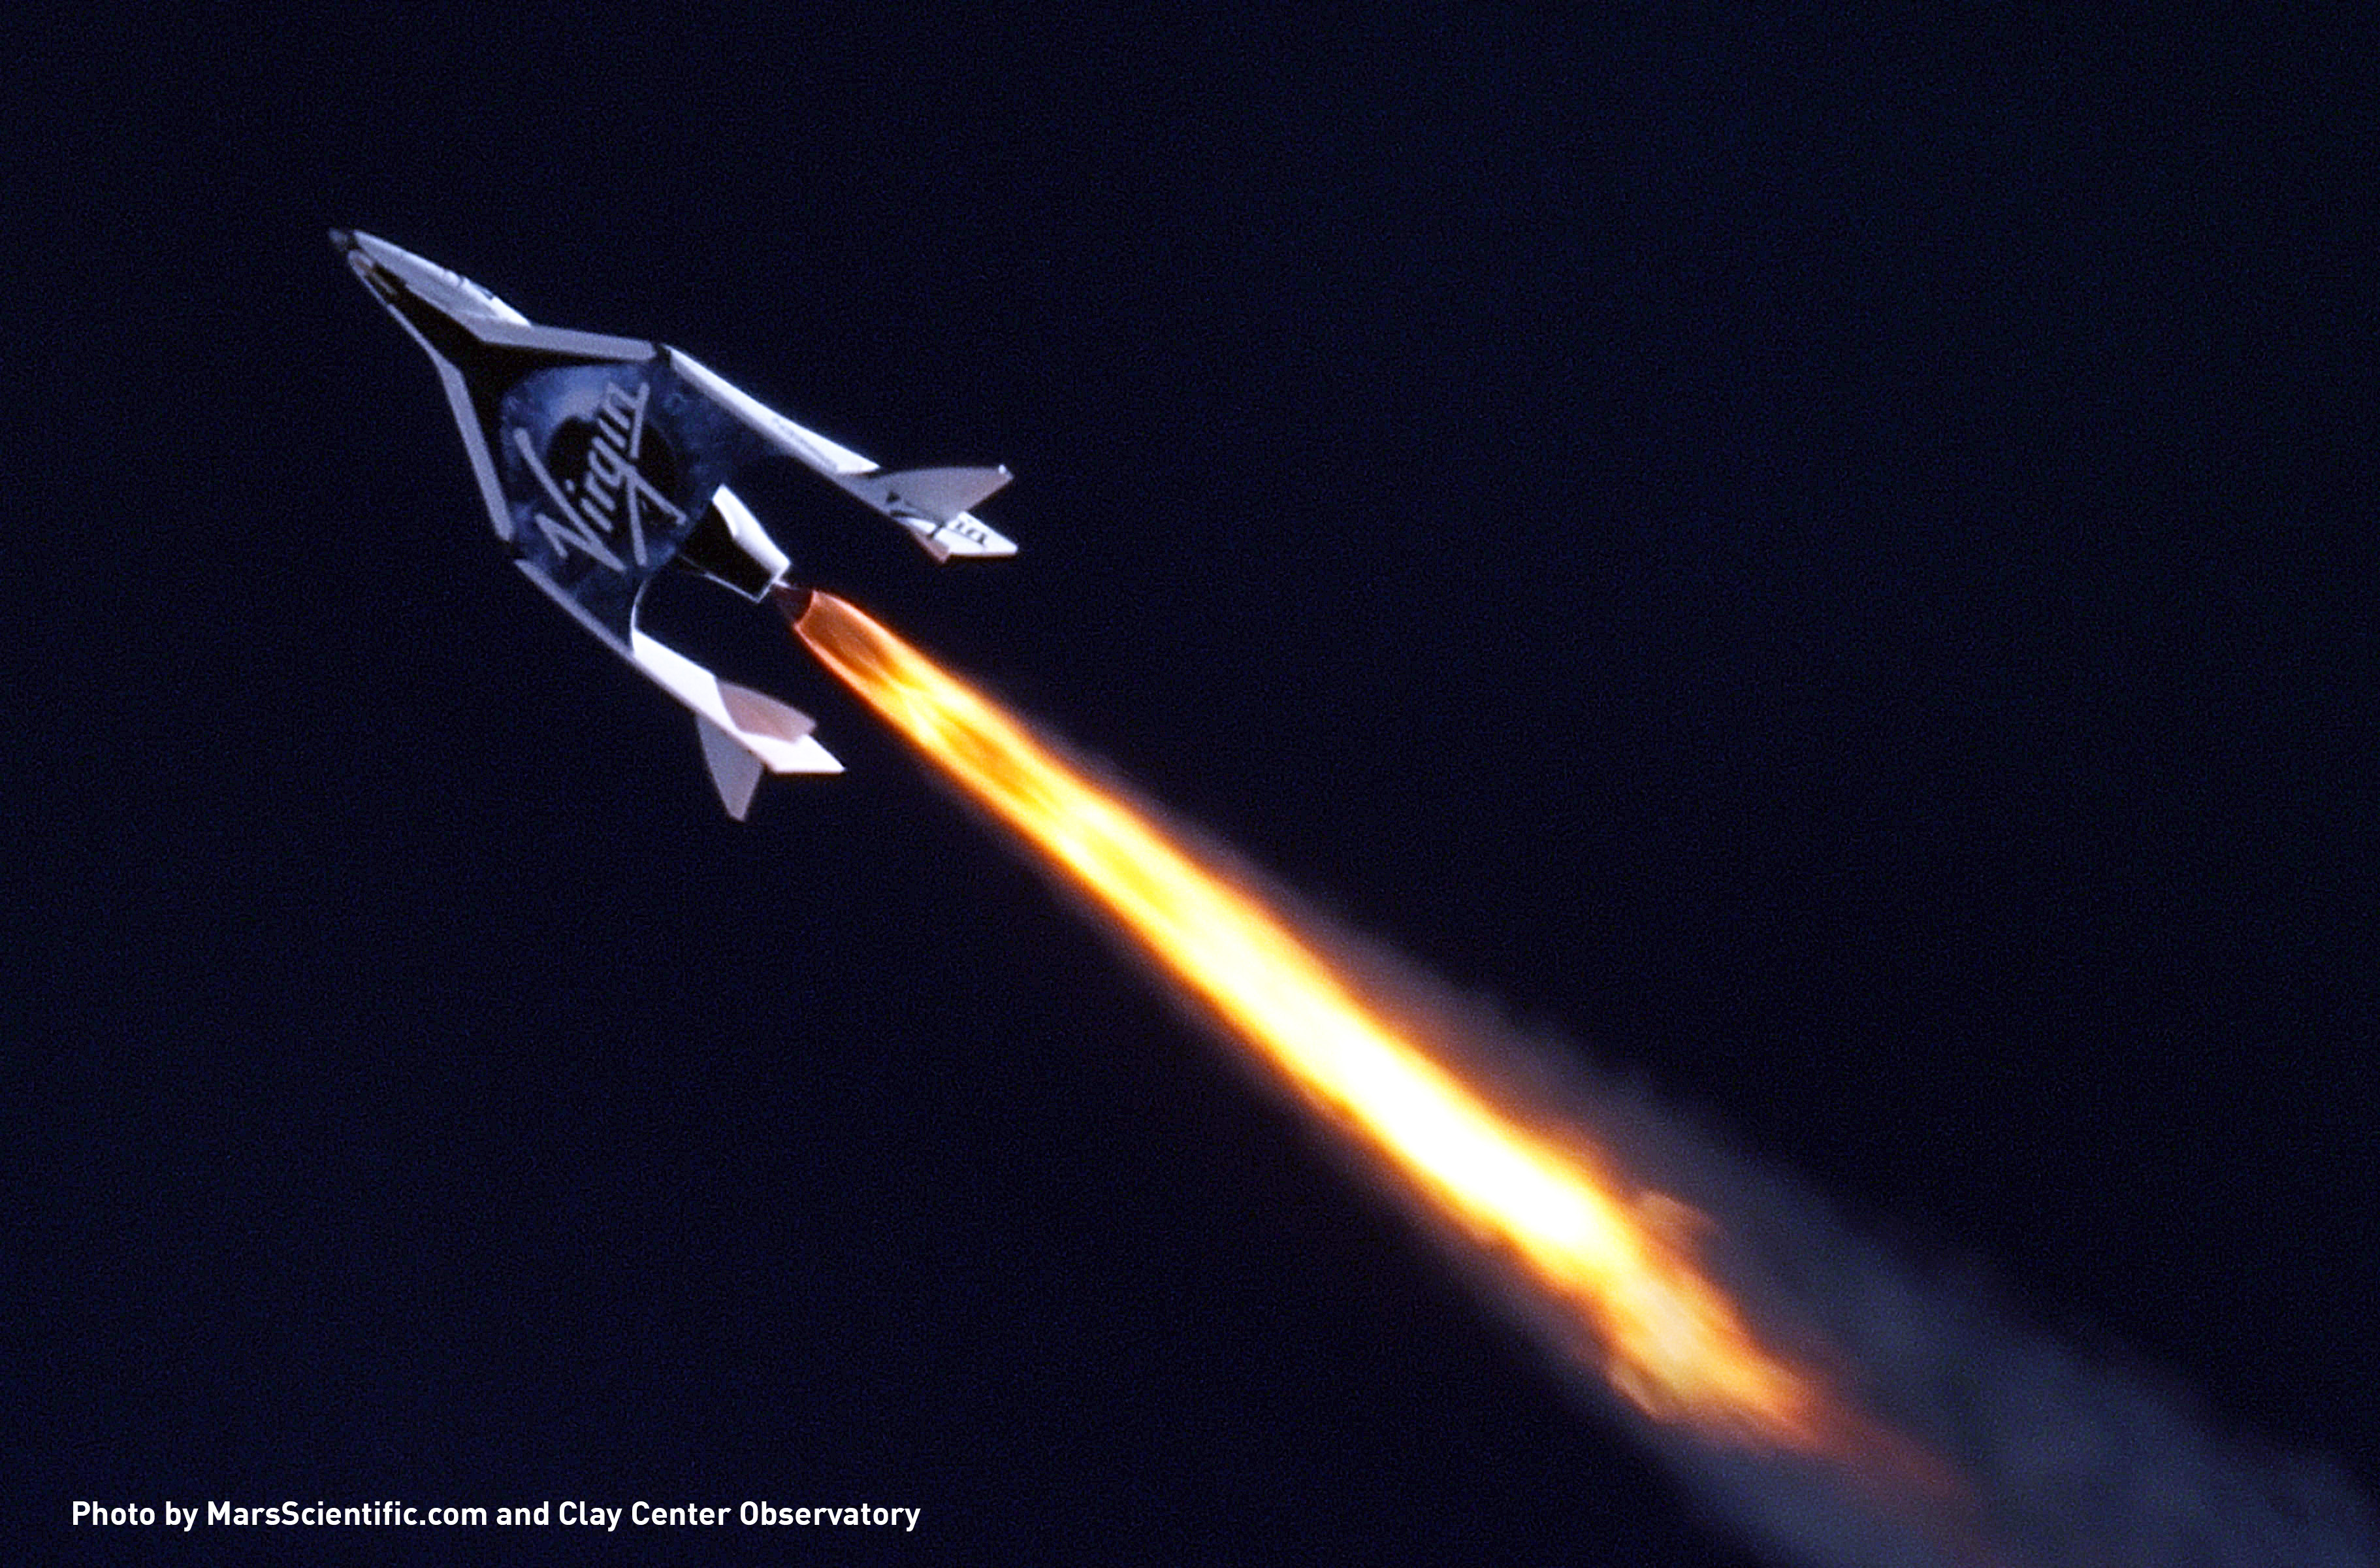 Virgin Galactic: Successful test of SpaceShipTwo space plane.